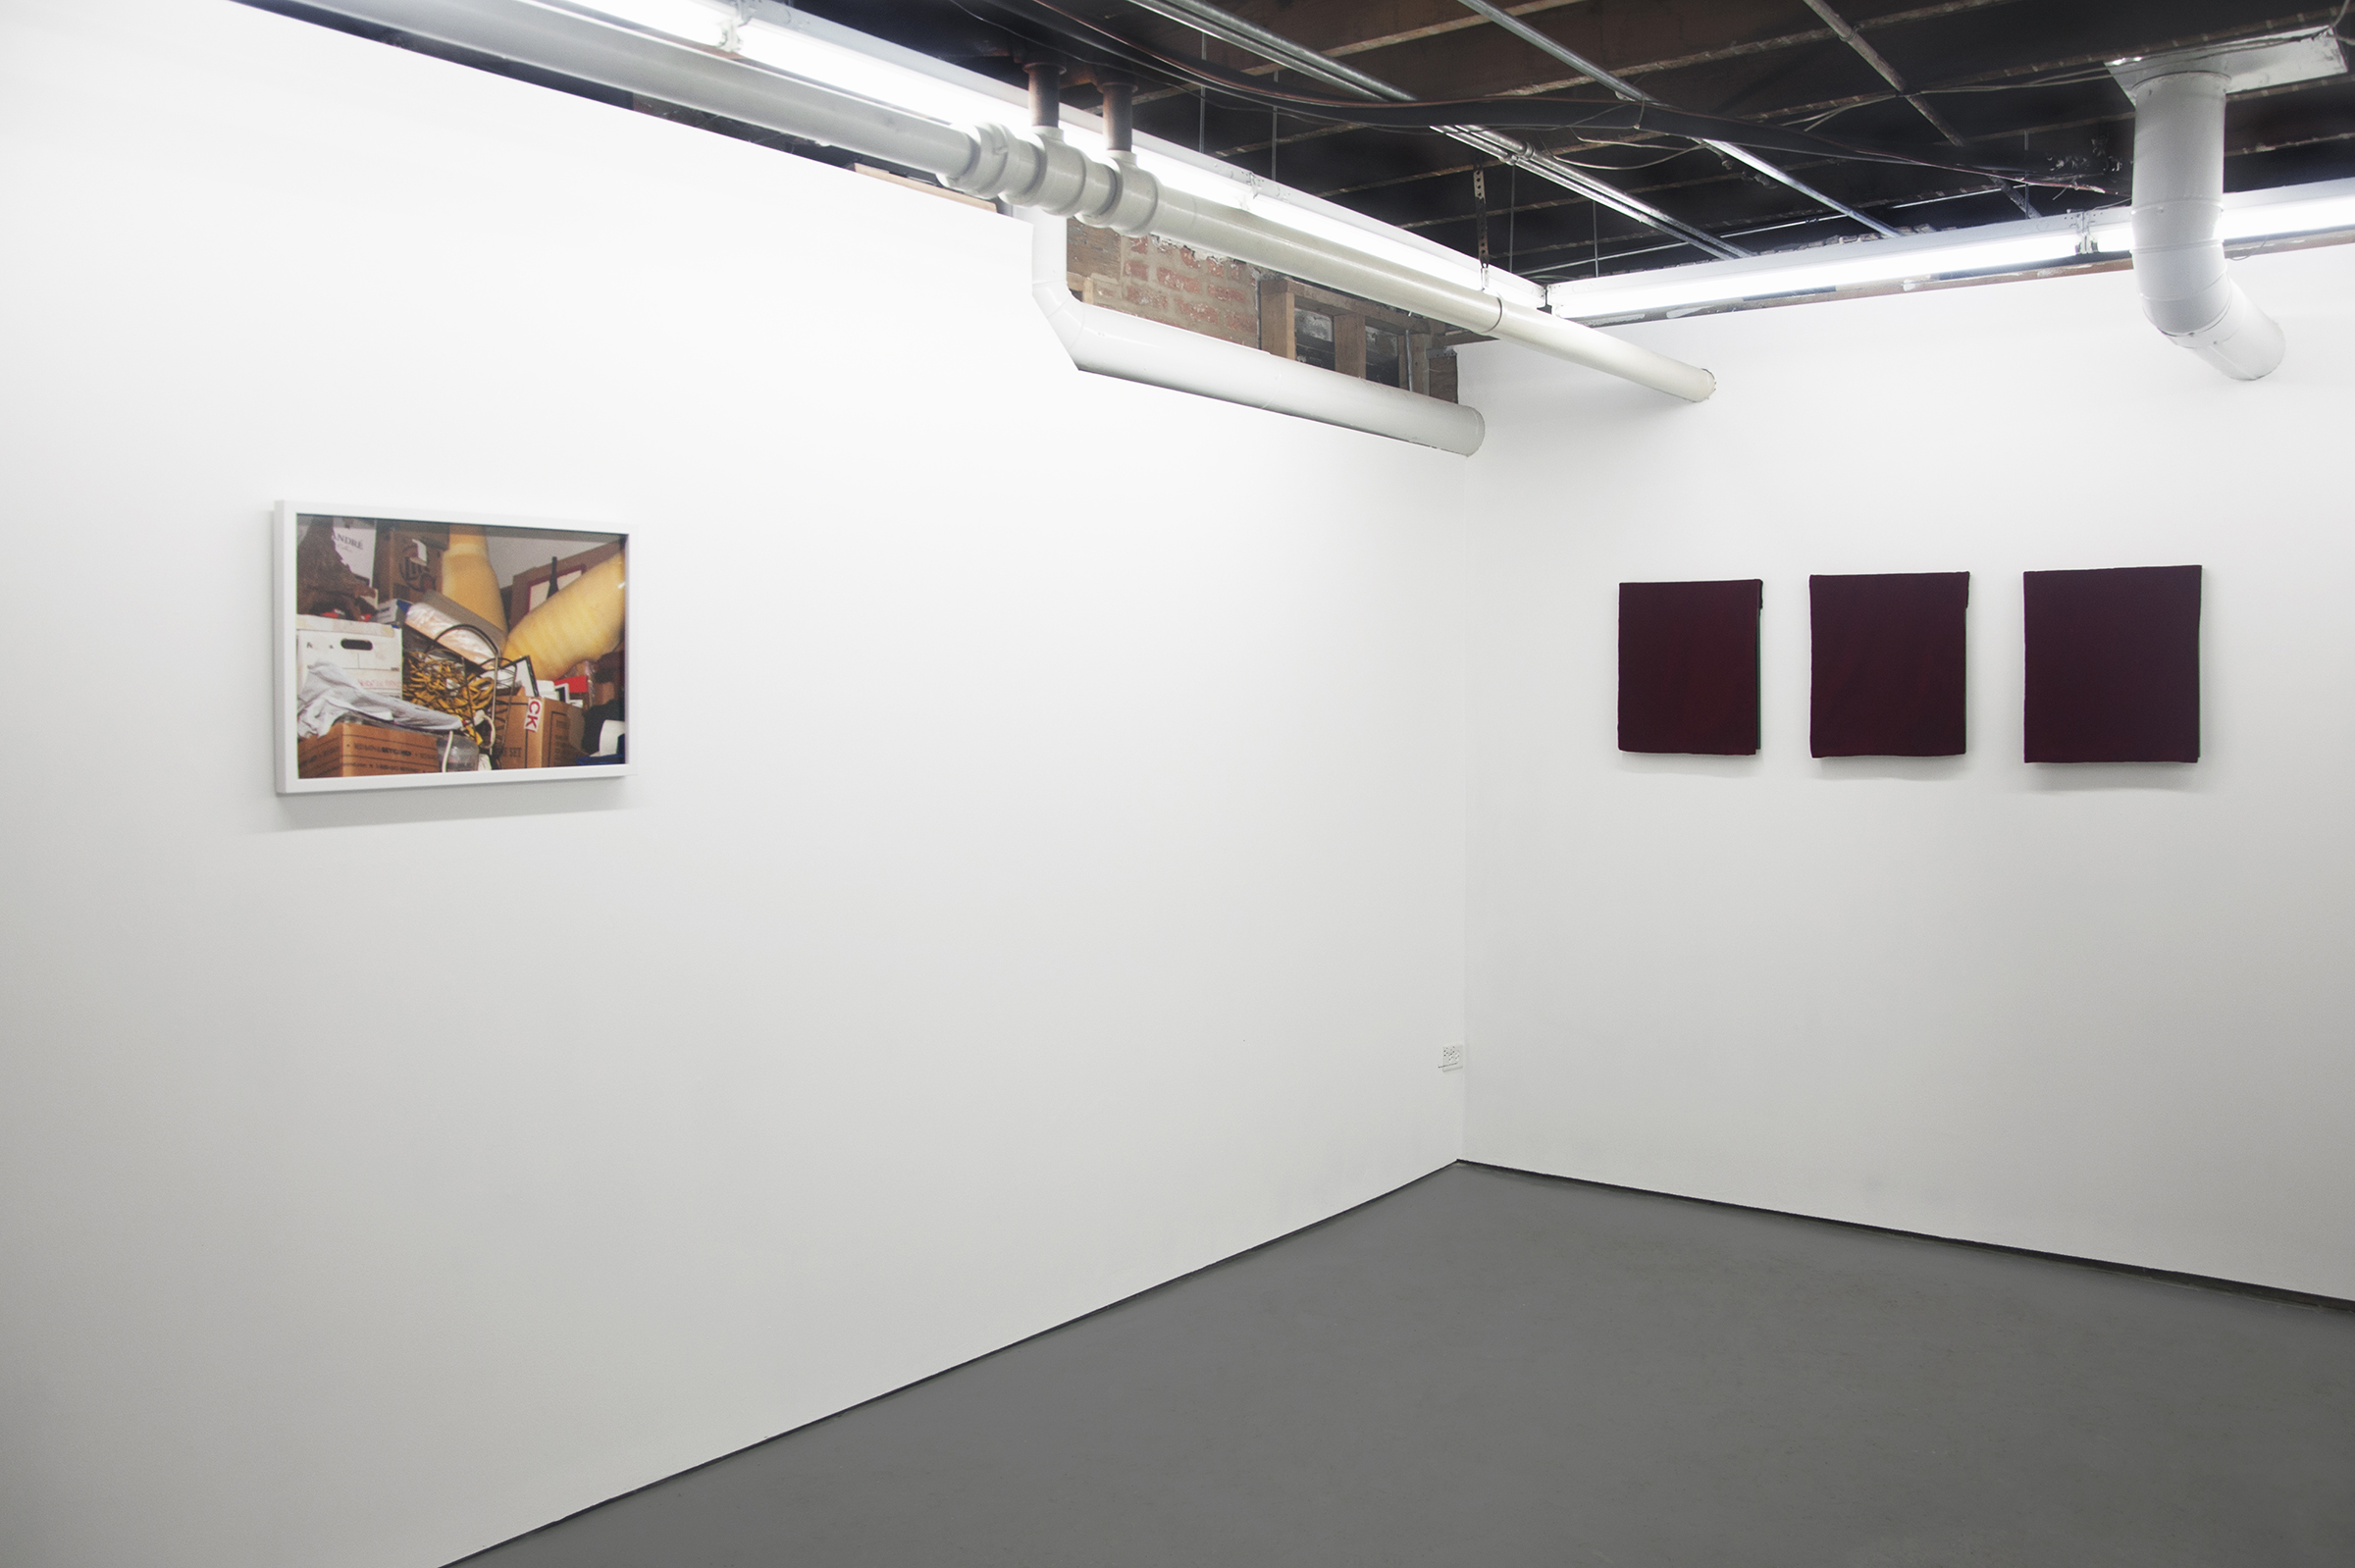 "Frontward Tilt (from left to right), Ramsey Alderson, ""Untitled"", 2015, Photograph; Jeremy Biles, ""Ariadne's Thread"", 2015, digital print with graphite and wax crayon on newsprint with velvet veil; Jeremy Biles, ""The Sensation of Time"", 2015, digital print with graphite, colored pencil, and collage on newsprint with velvet veil; Jeremy Biles, 2015, ""Mirror of Tauromachy"", digital print with graphite, colored pencil, and semen on newsprint with velvet veil."